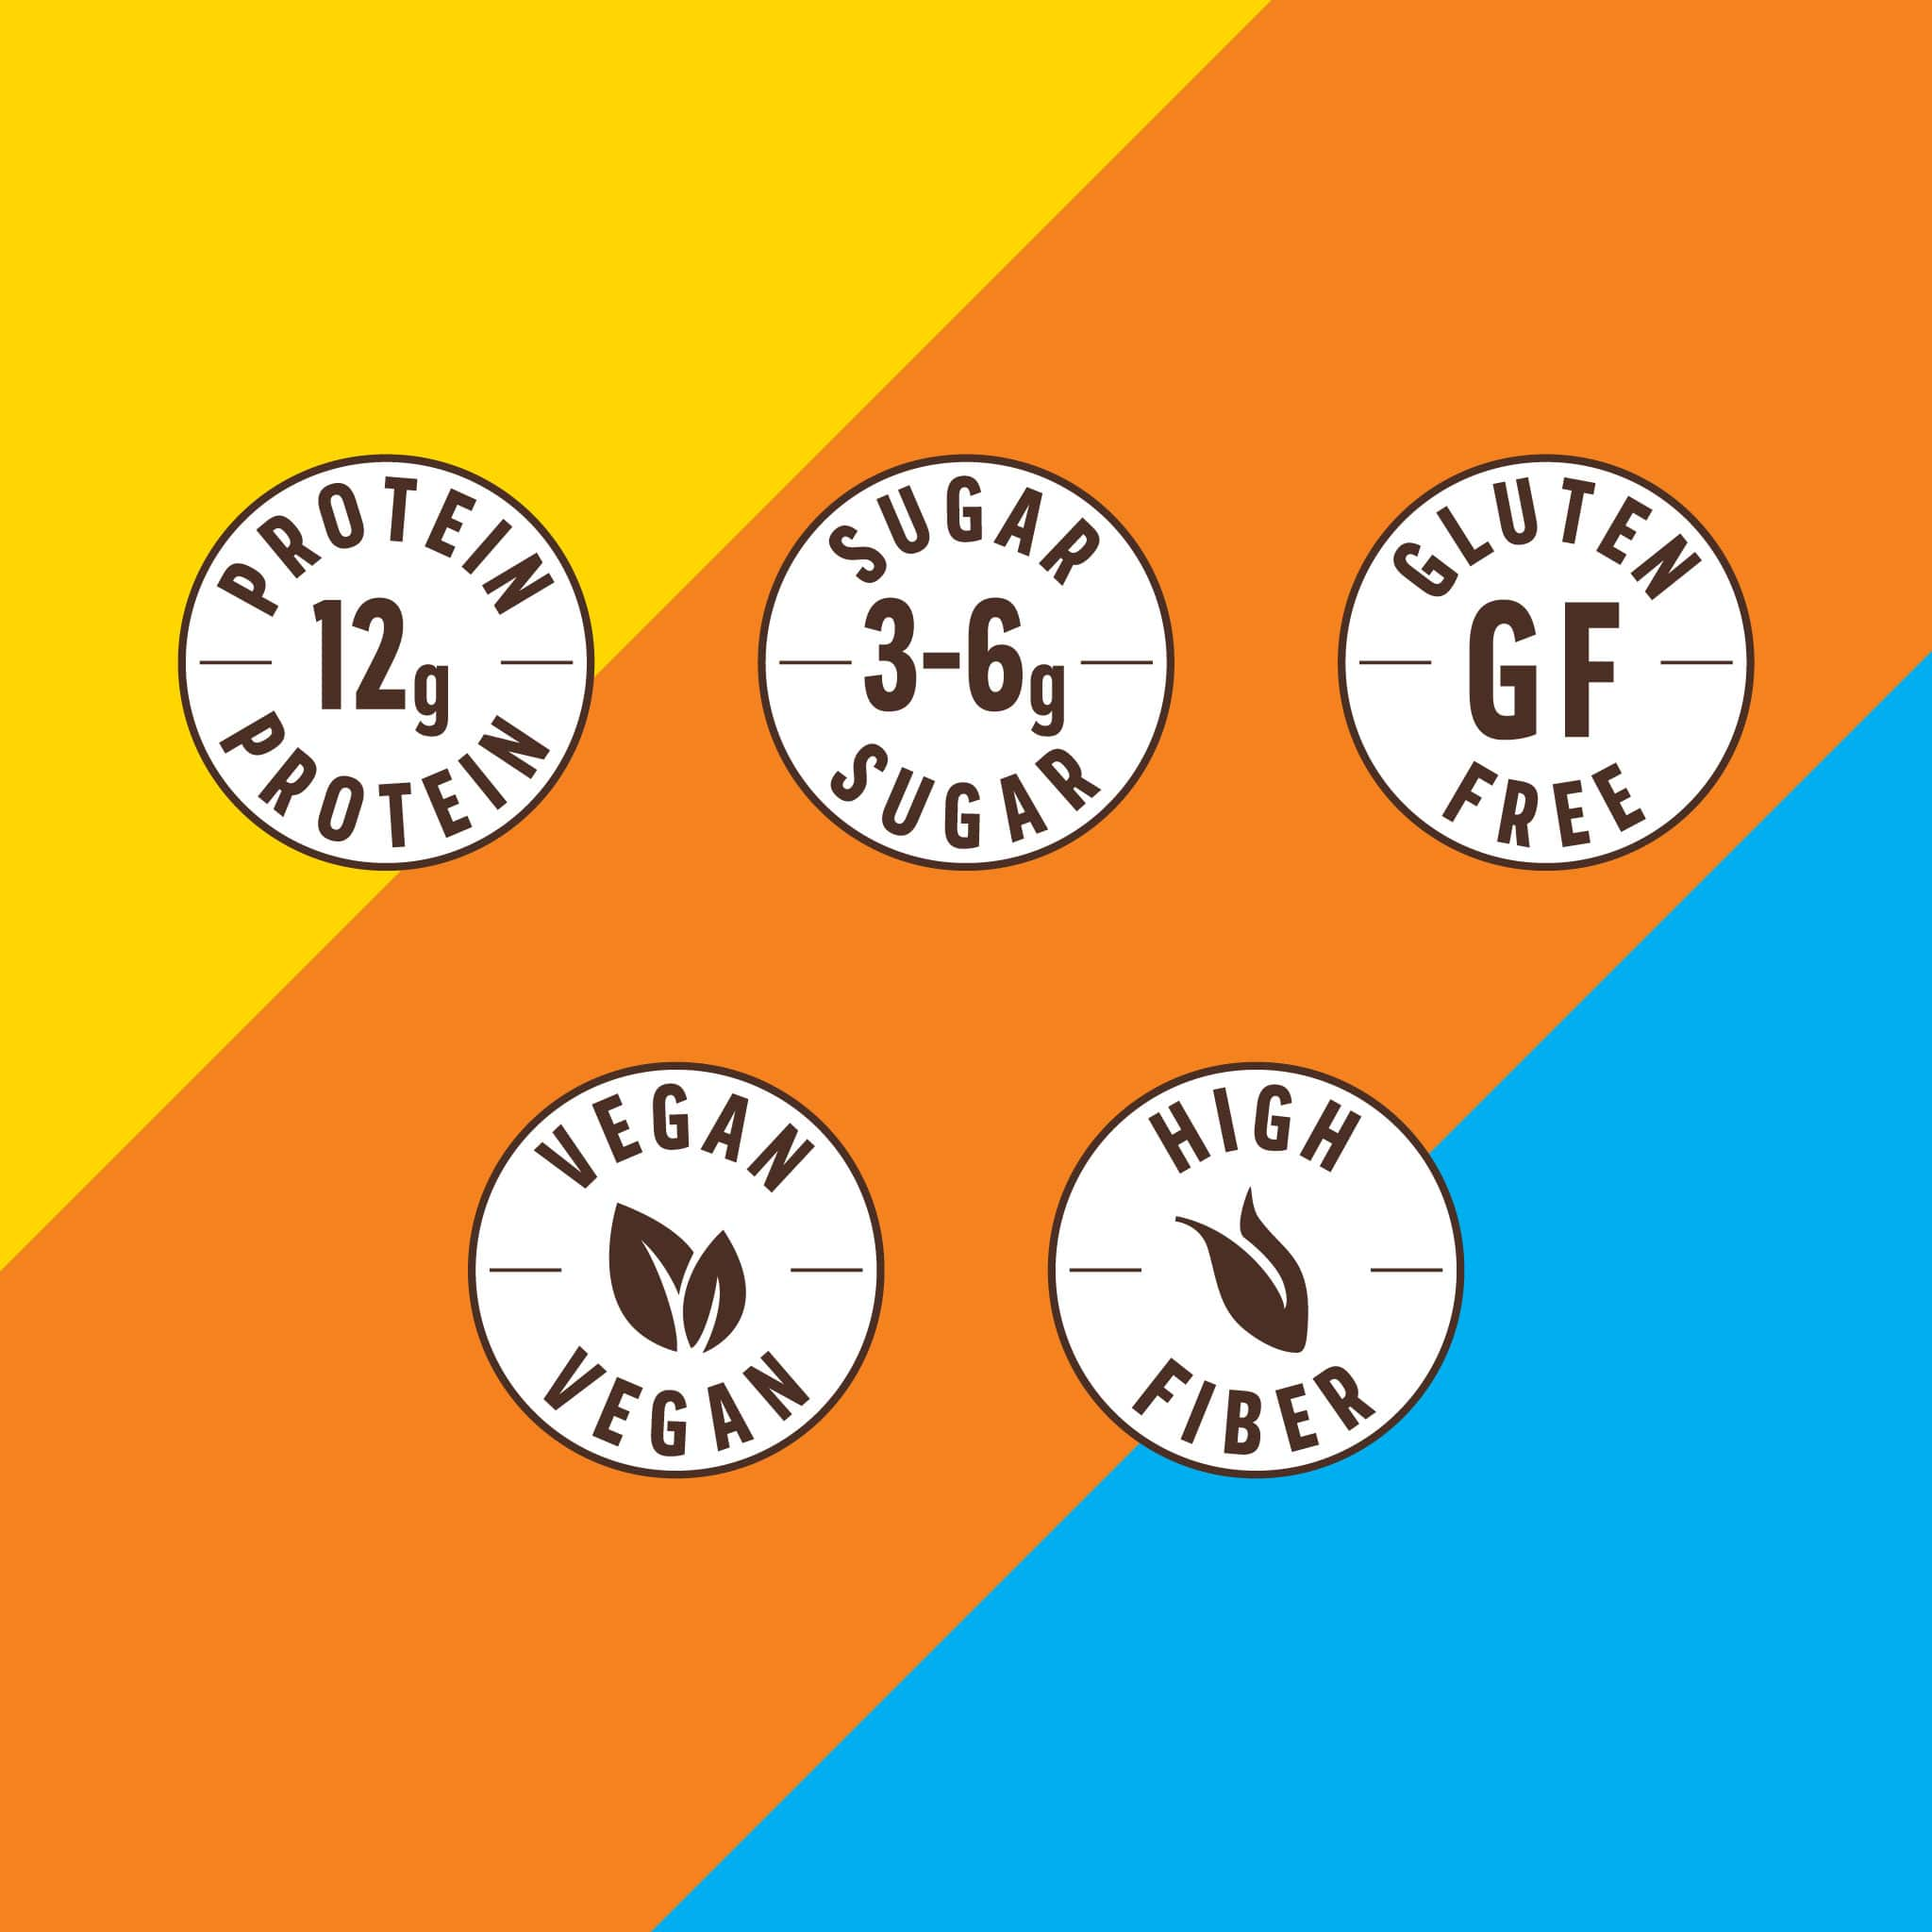 Grab The Gold Protein Cookie 3up Nutrition Icons 09.20